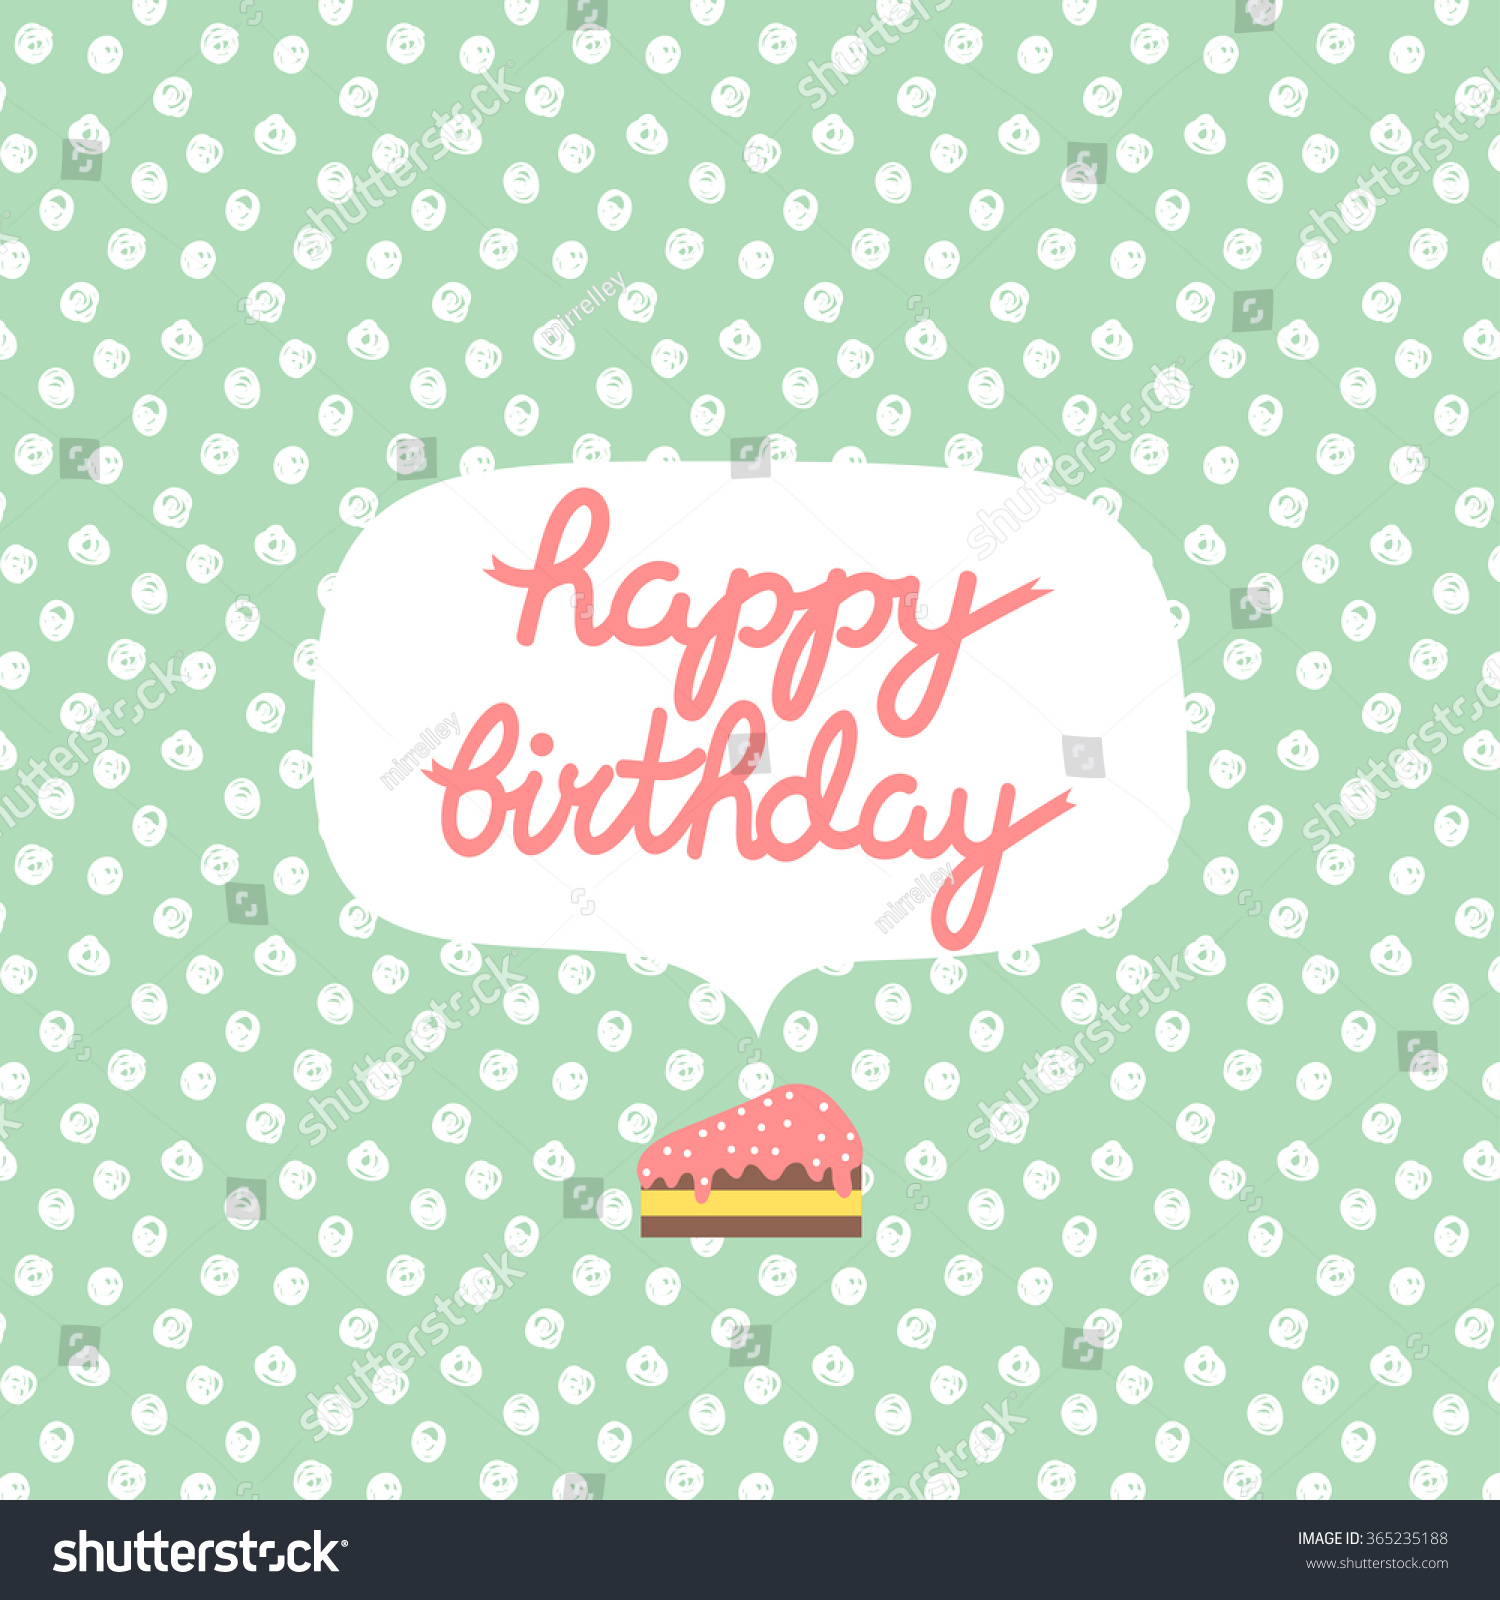 Poster happy birthday text message on stock vector royalty free poster with happy birthday text message on pastel green polka dots background with slice of cake m4hsunfo